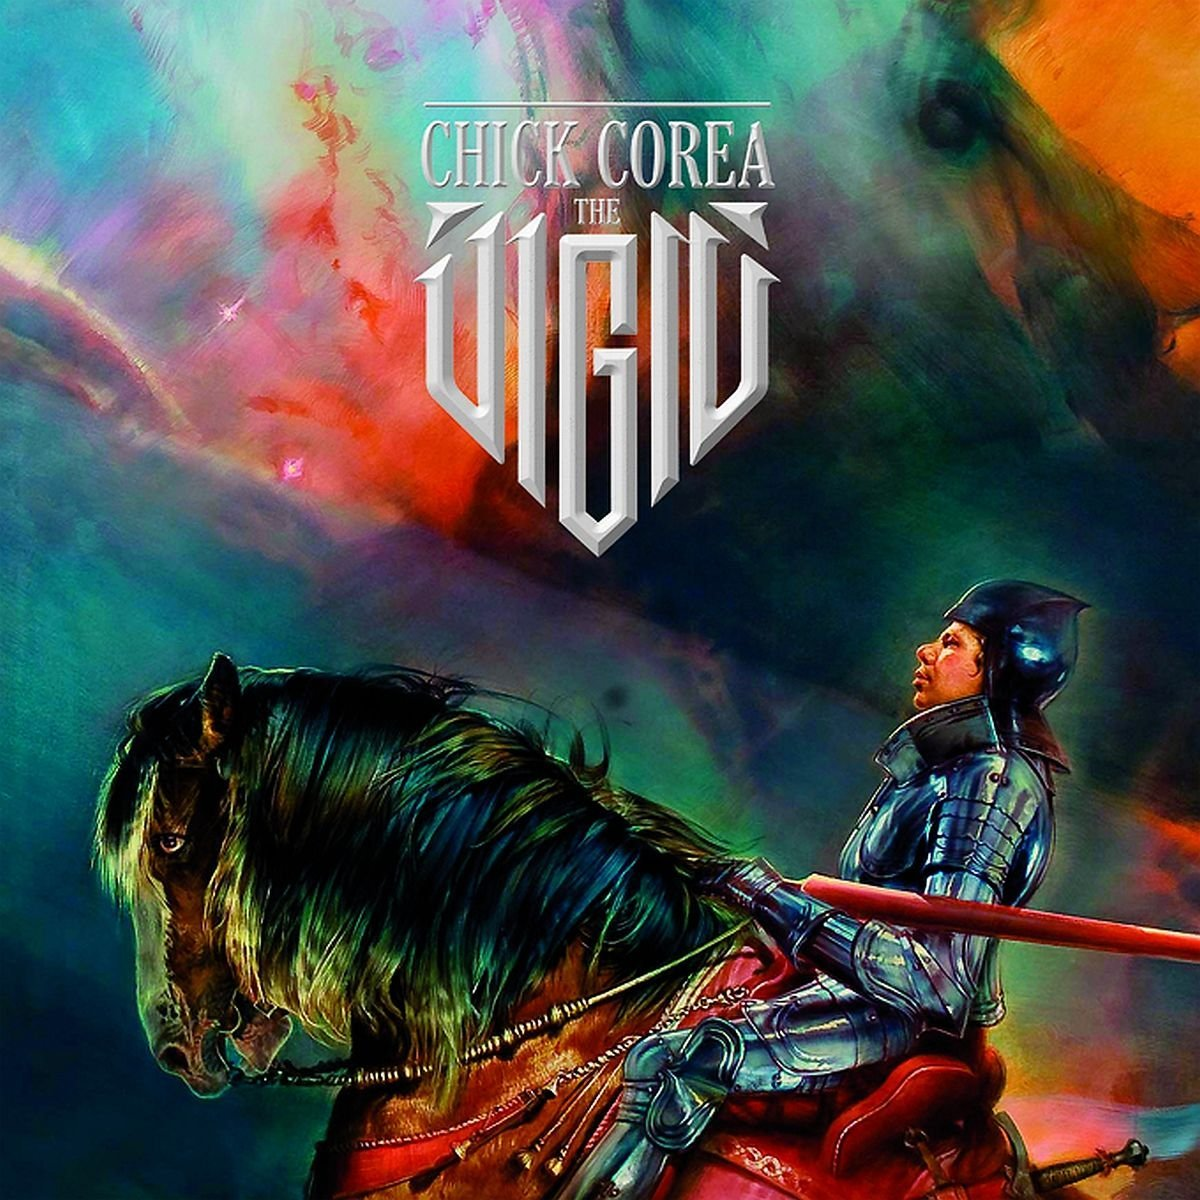 Chick Corea: The Vigil (Concord, 2013)